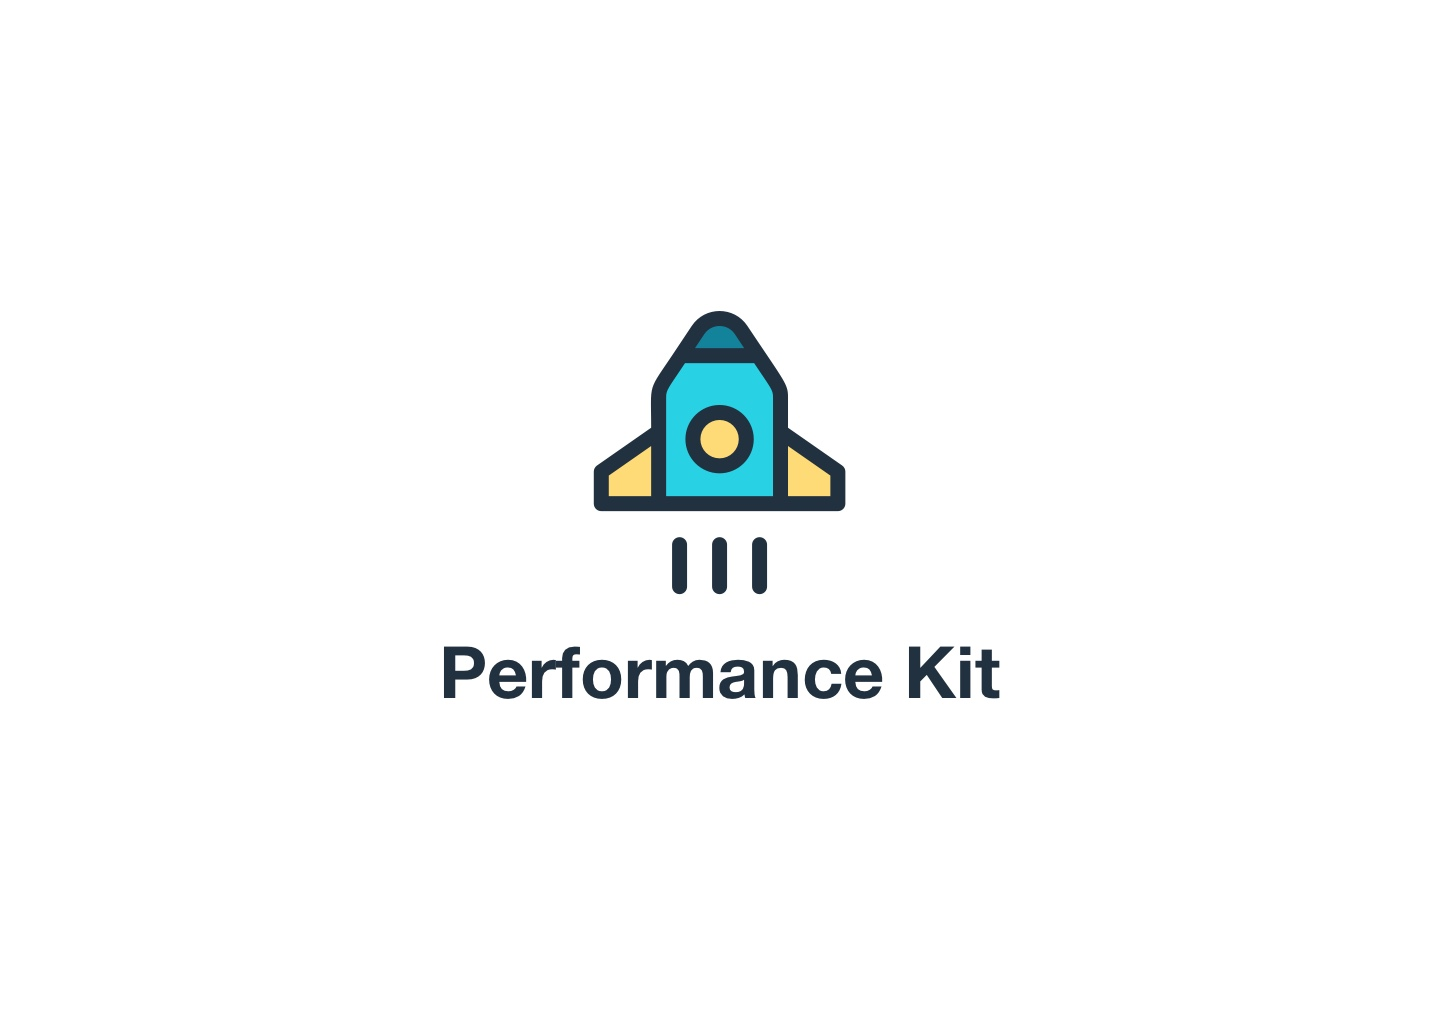 Performance Kit